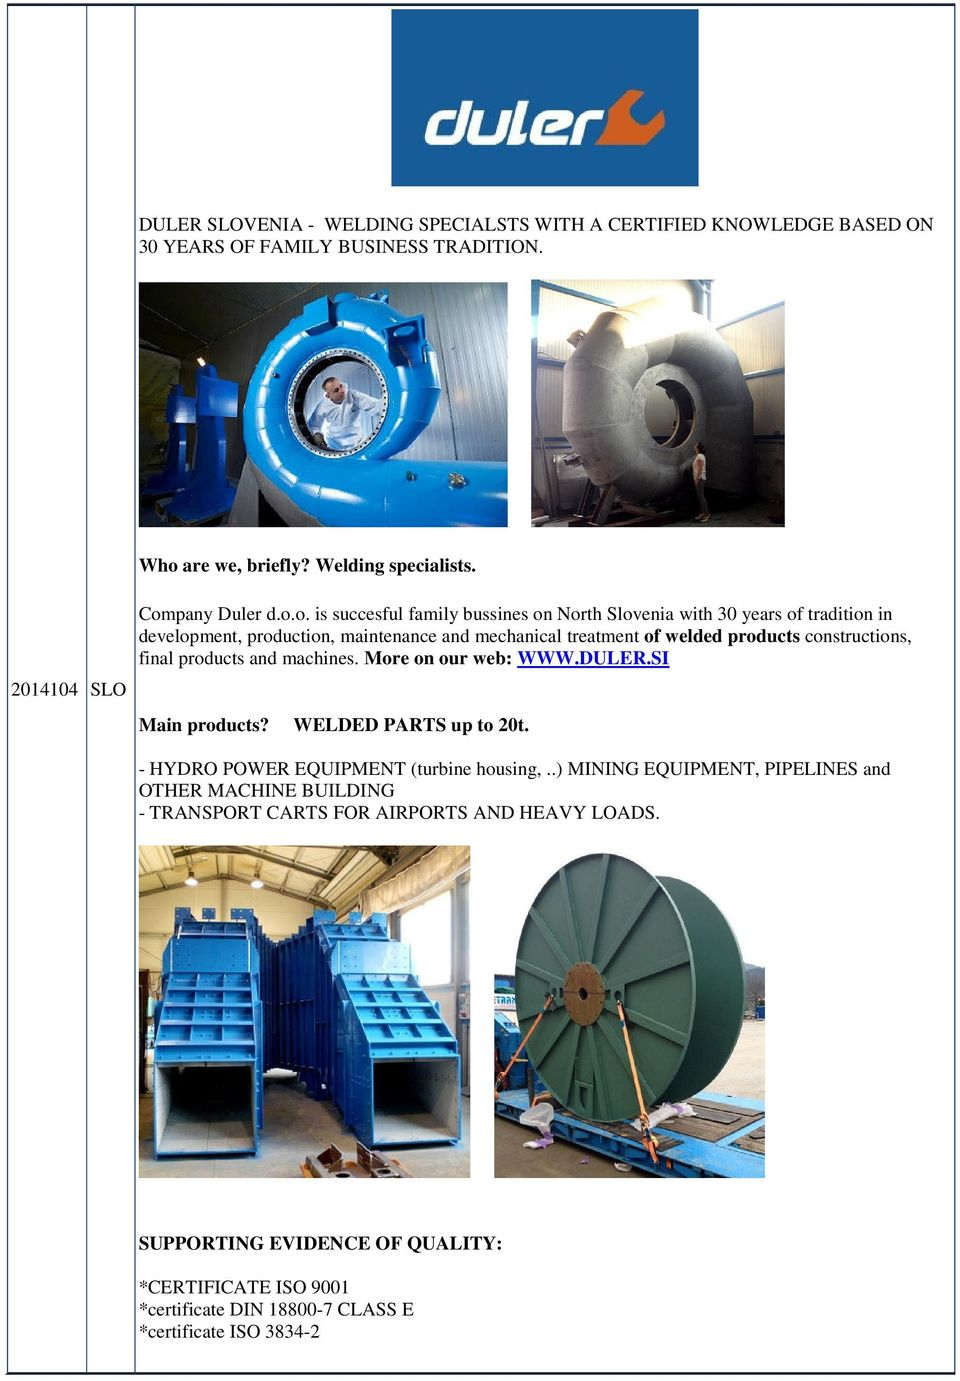 constructions, final products and machines. More on our web: WWW.DULER.SI Main products? WELDED PARTS up to 20t. - HYDRO POWER EQUIPMENT (turbine housing,.